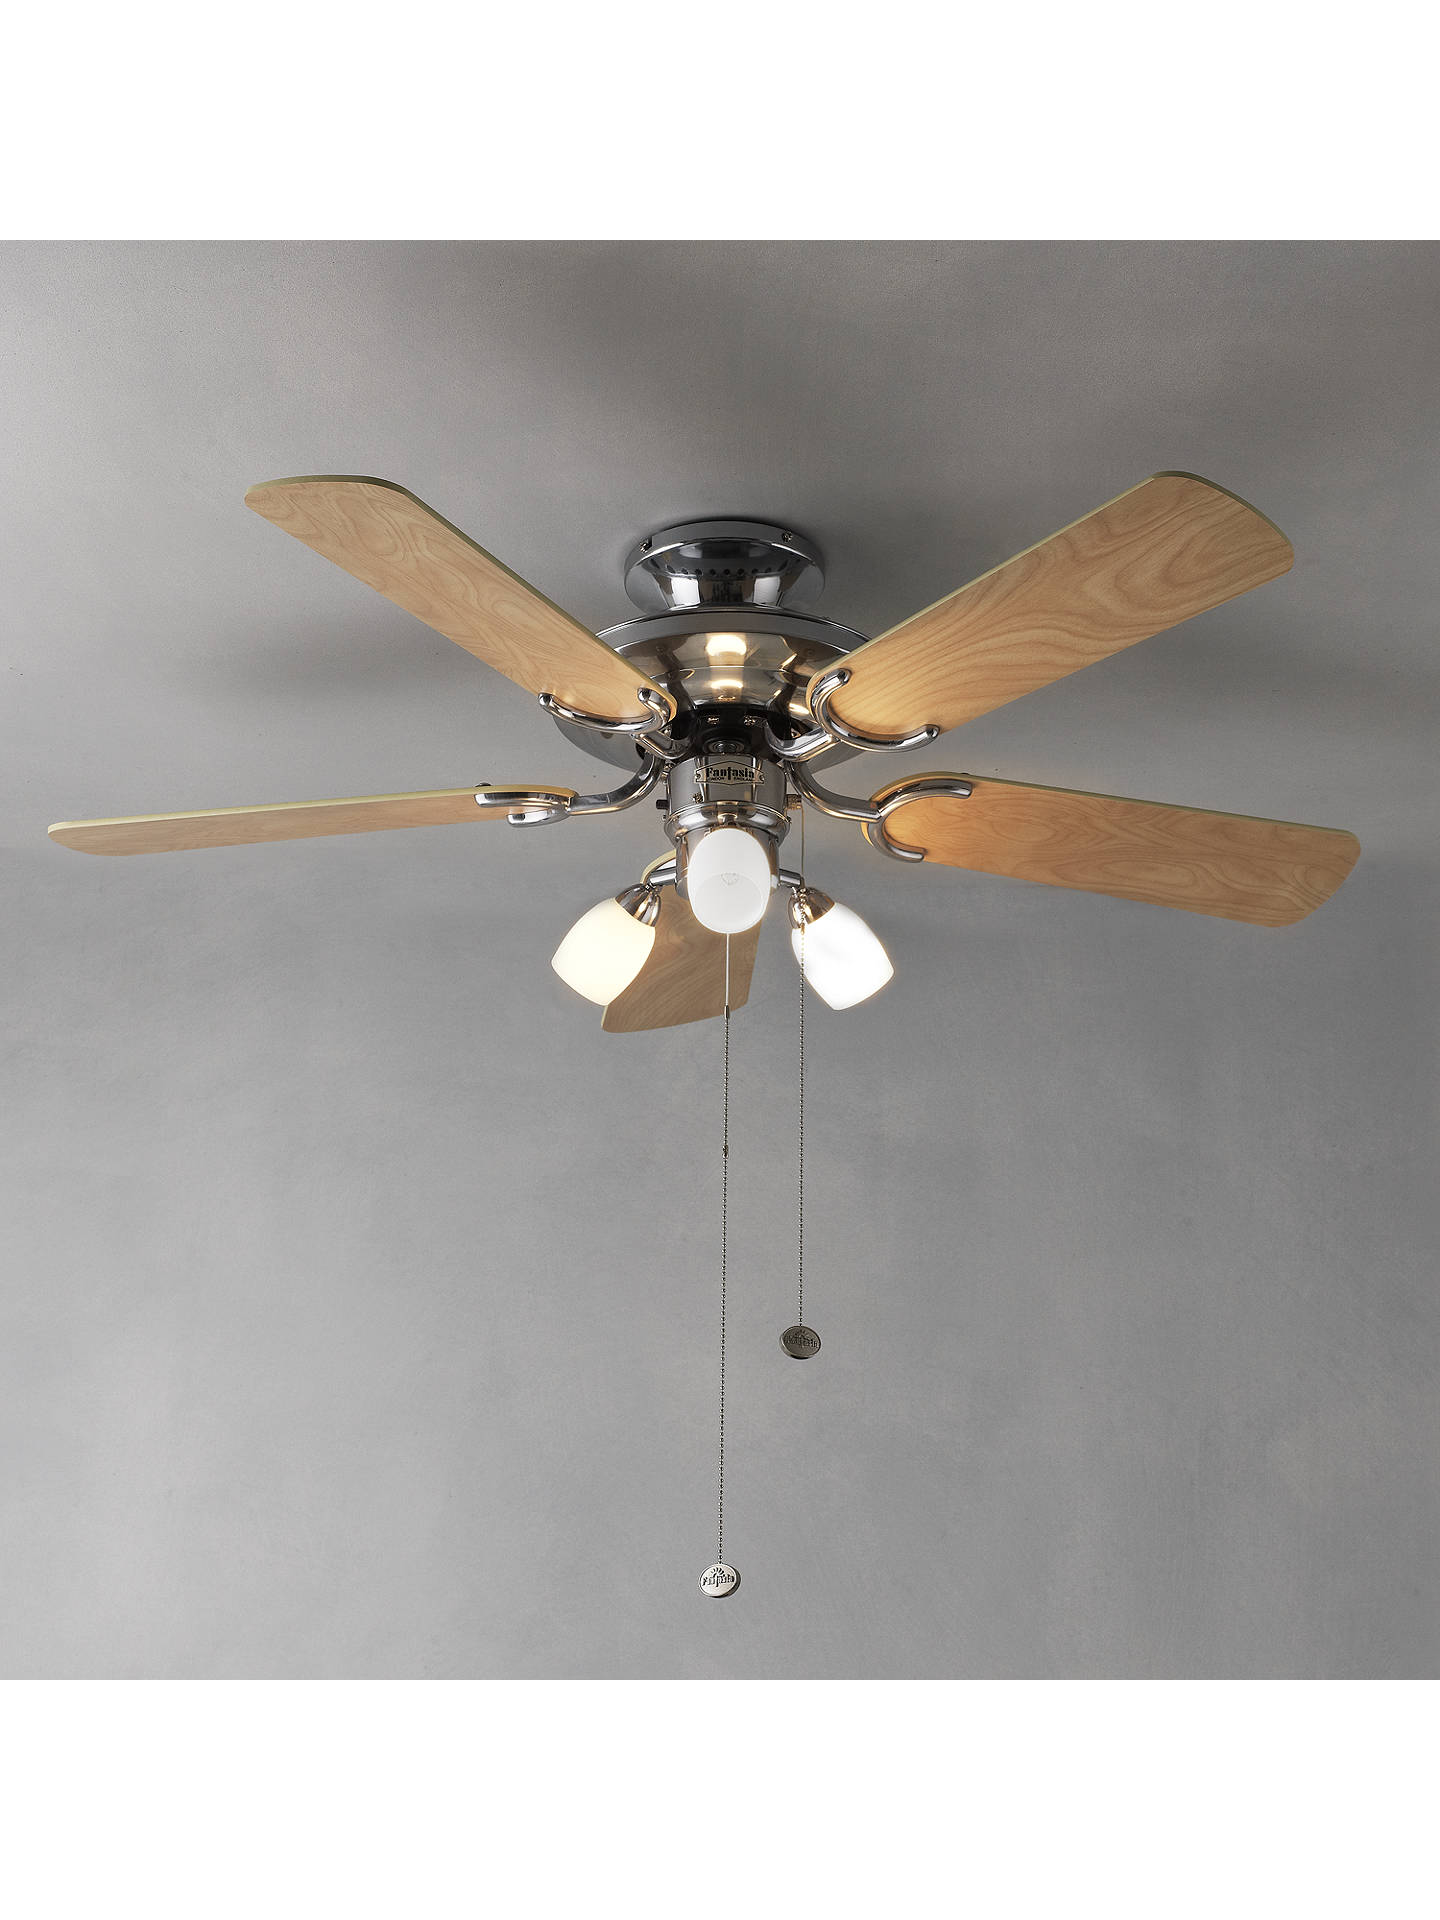 fantasia mayfair ceiling fan and light stainless steel at. Black Bedroom Furniture Sets. Home Design Ideas